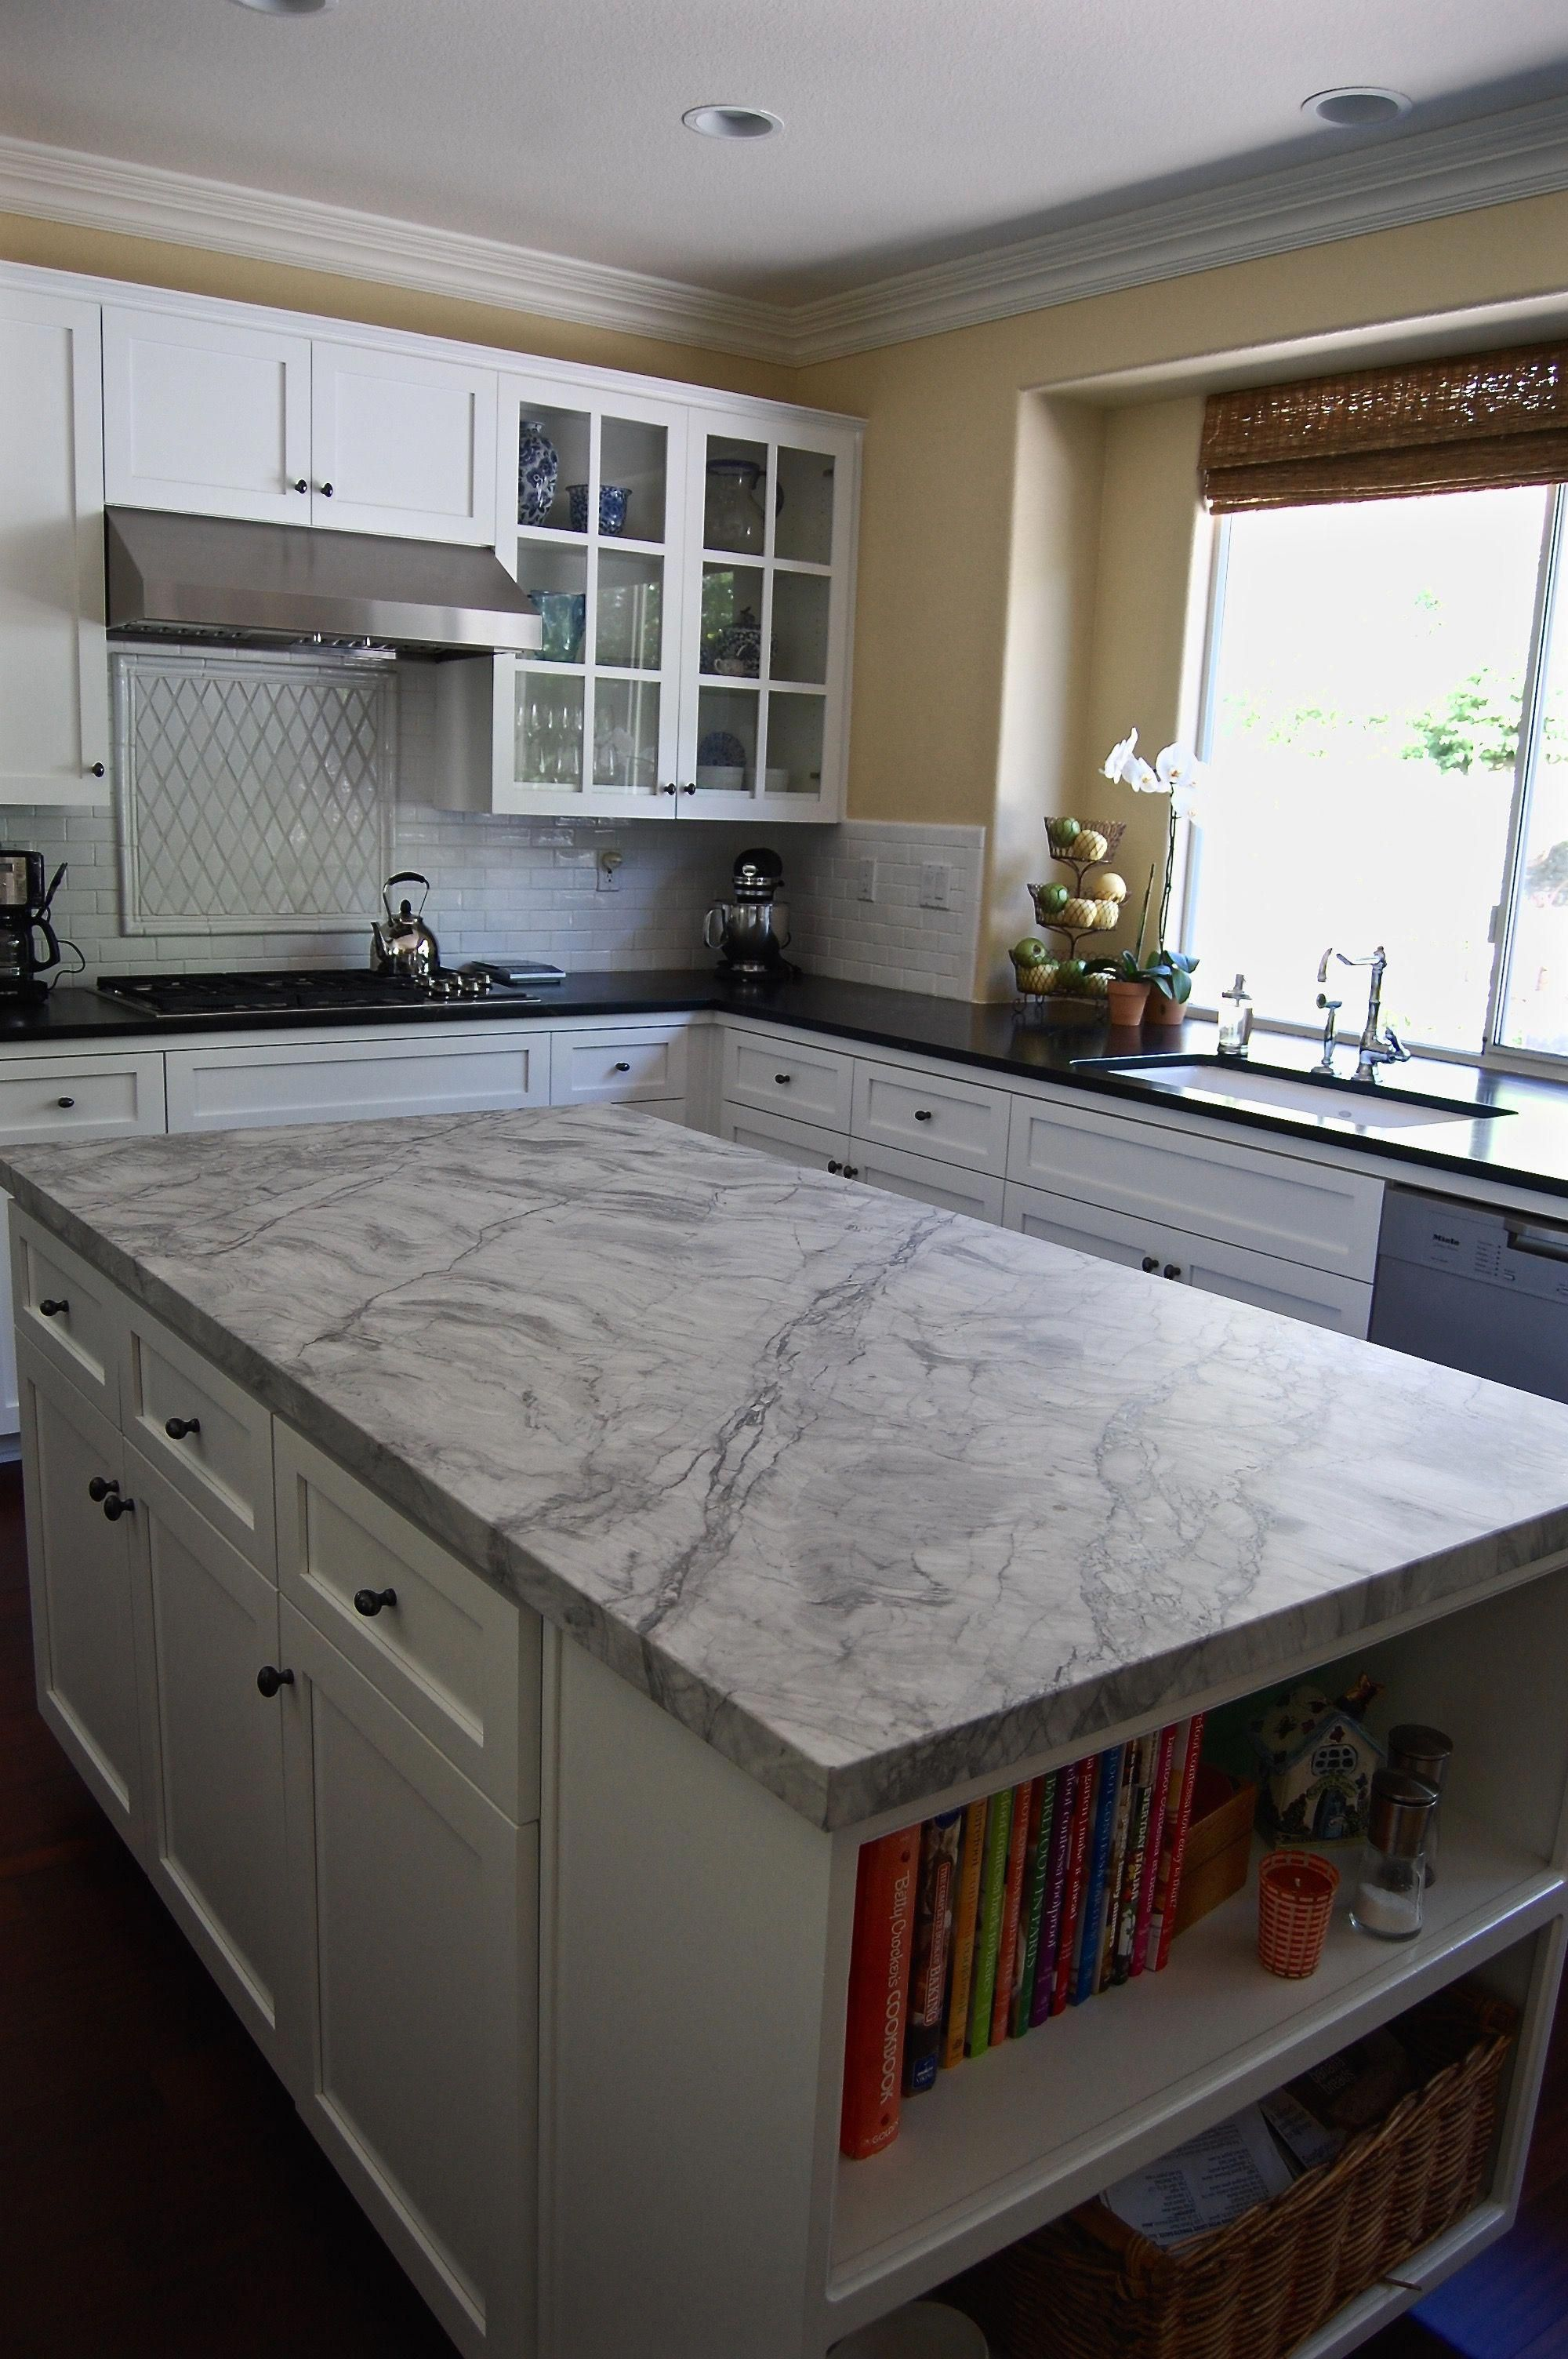 It Certainly Is Brilliant What They Did With This Specific Theme And Plan Soapstonecountertops